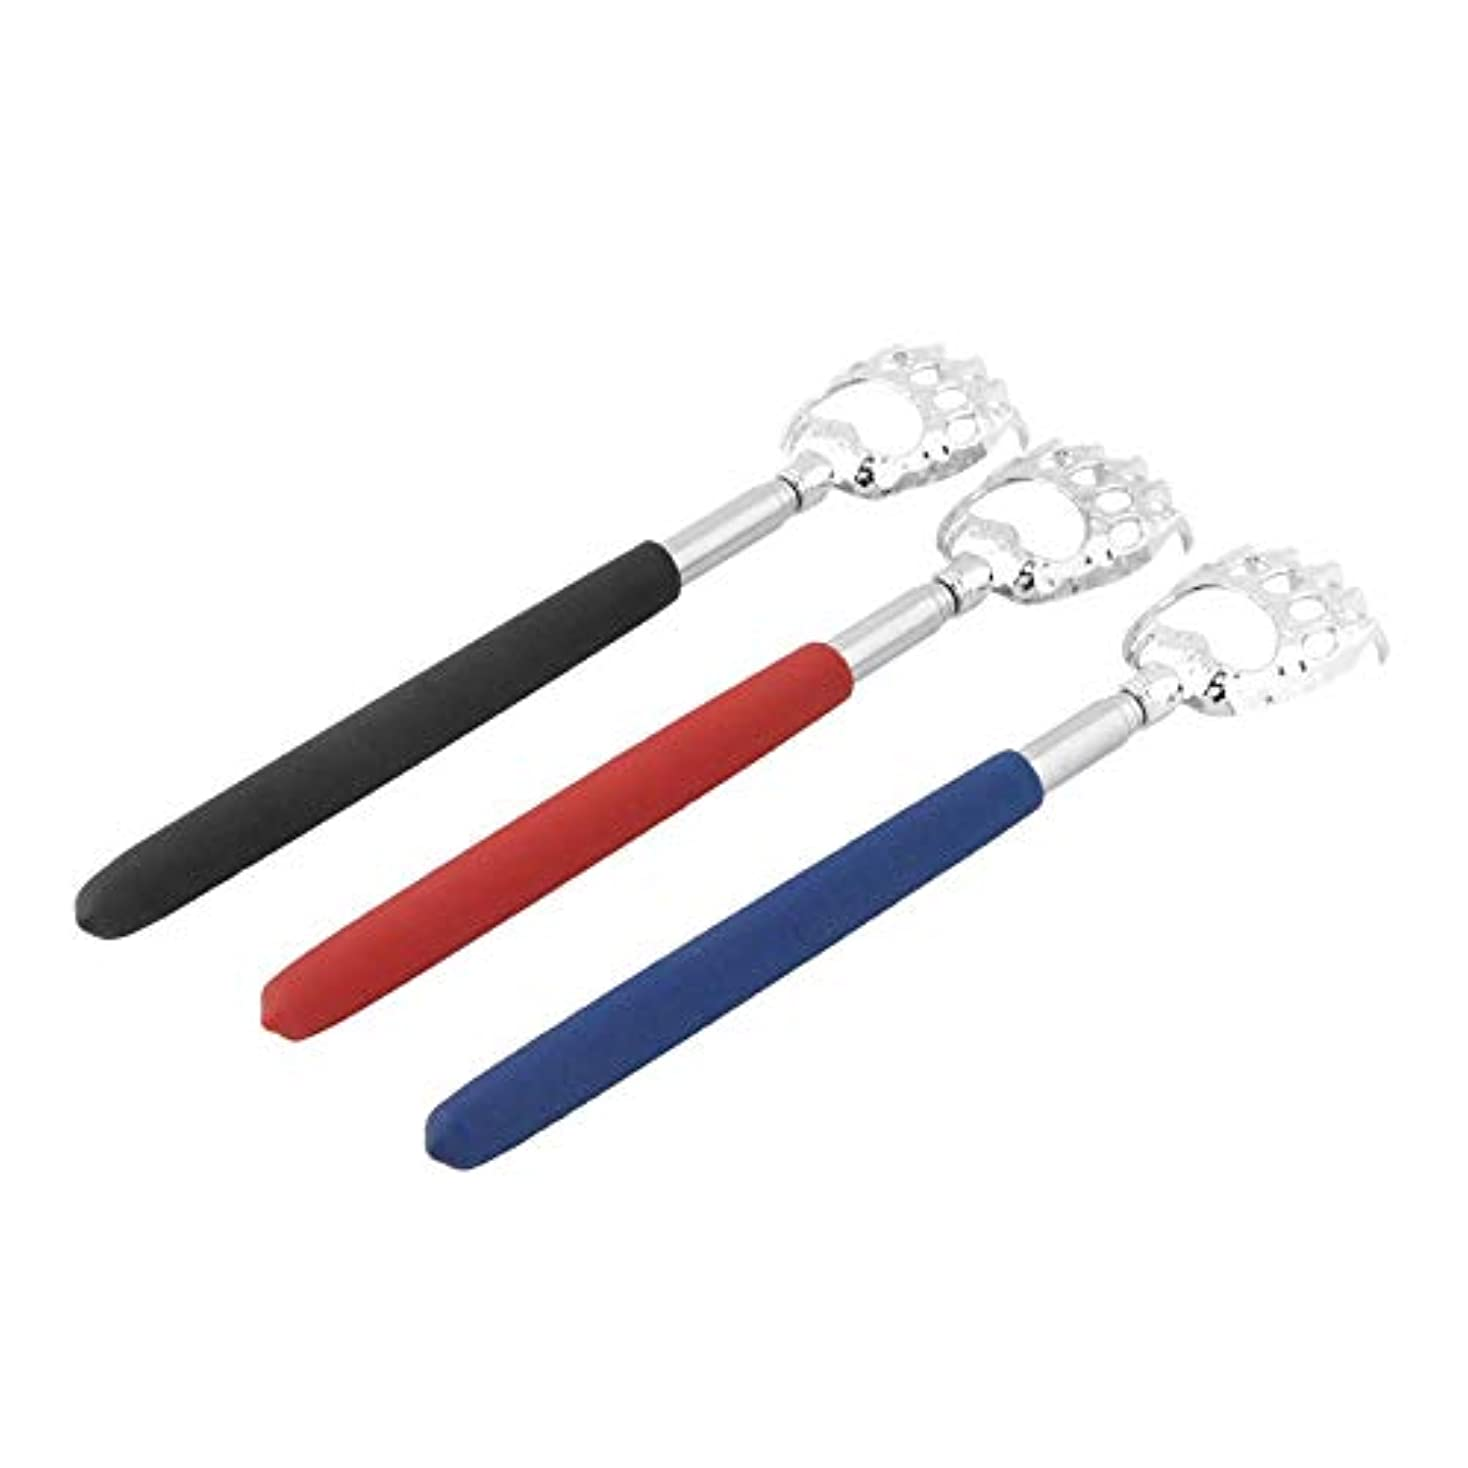 ロッド彼らのもの腰Hot Selling 10pcs Bear Claw healthy Back Scratcher Zinc alloy Portable Extendable Handy Pocket Pen Clip Back Scratcher